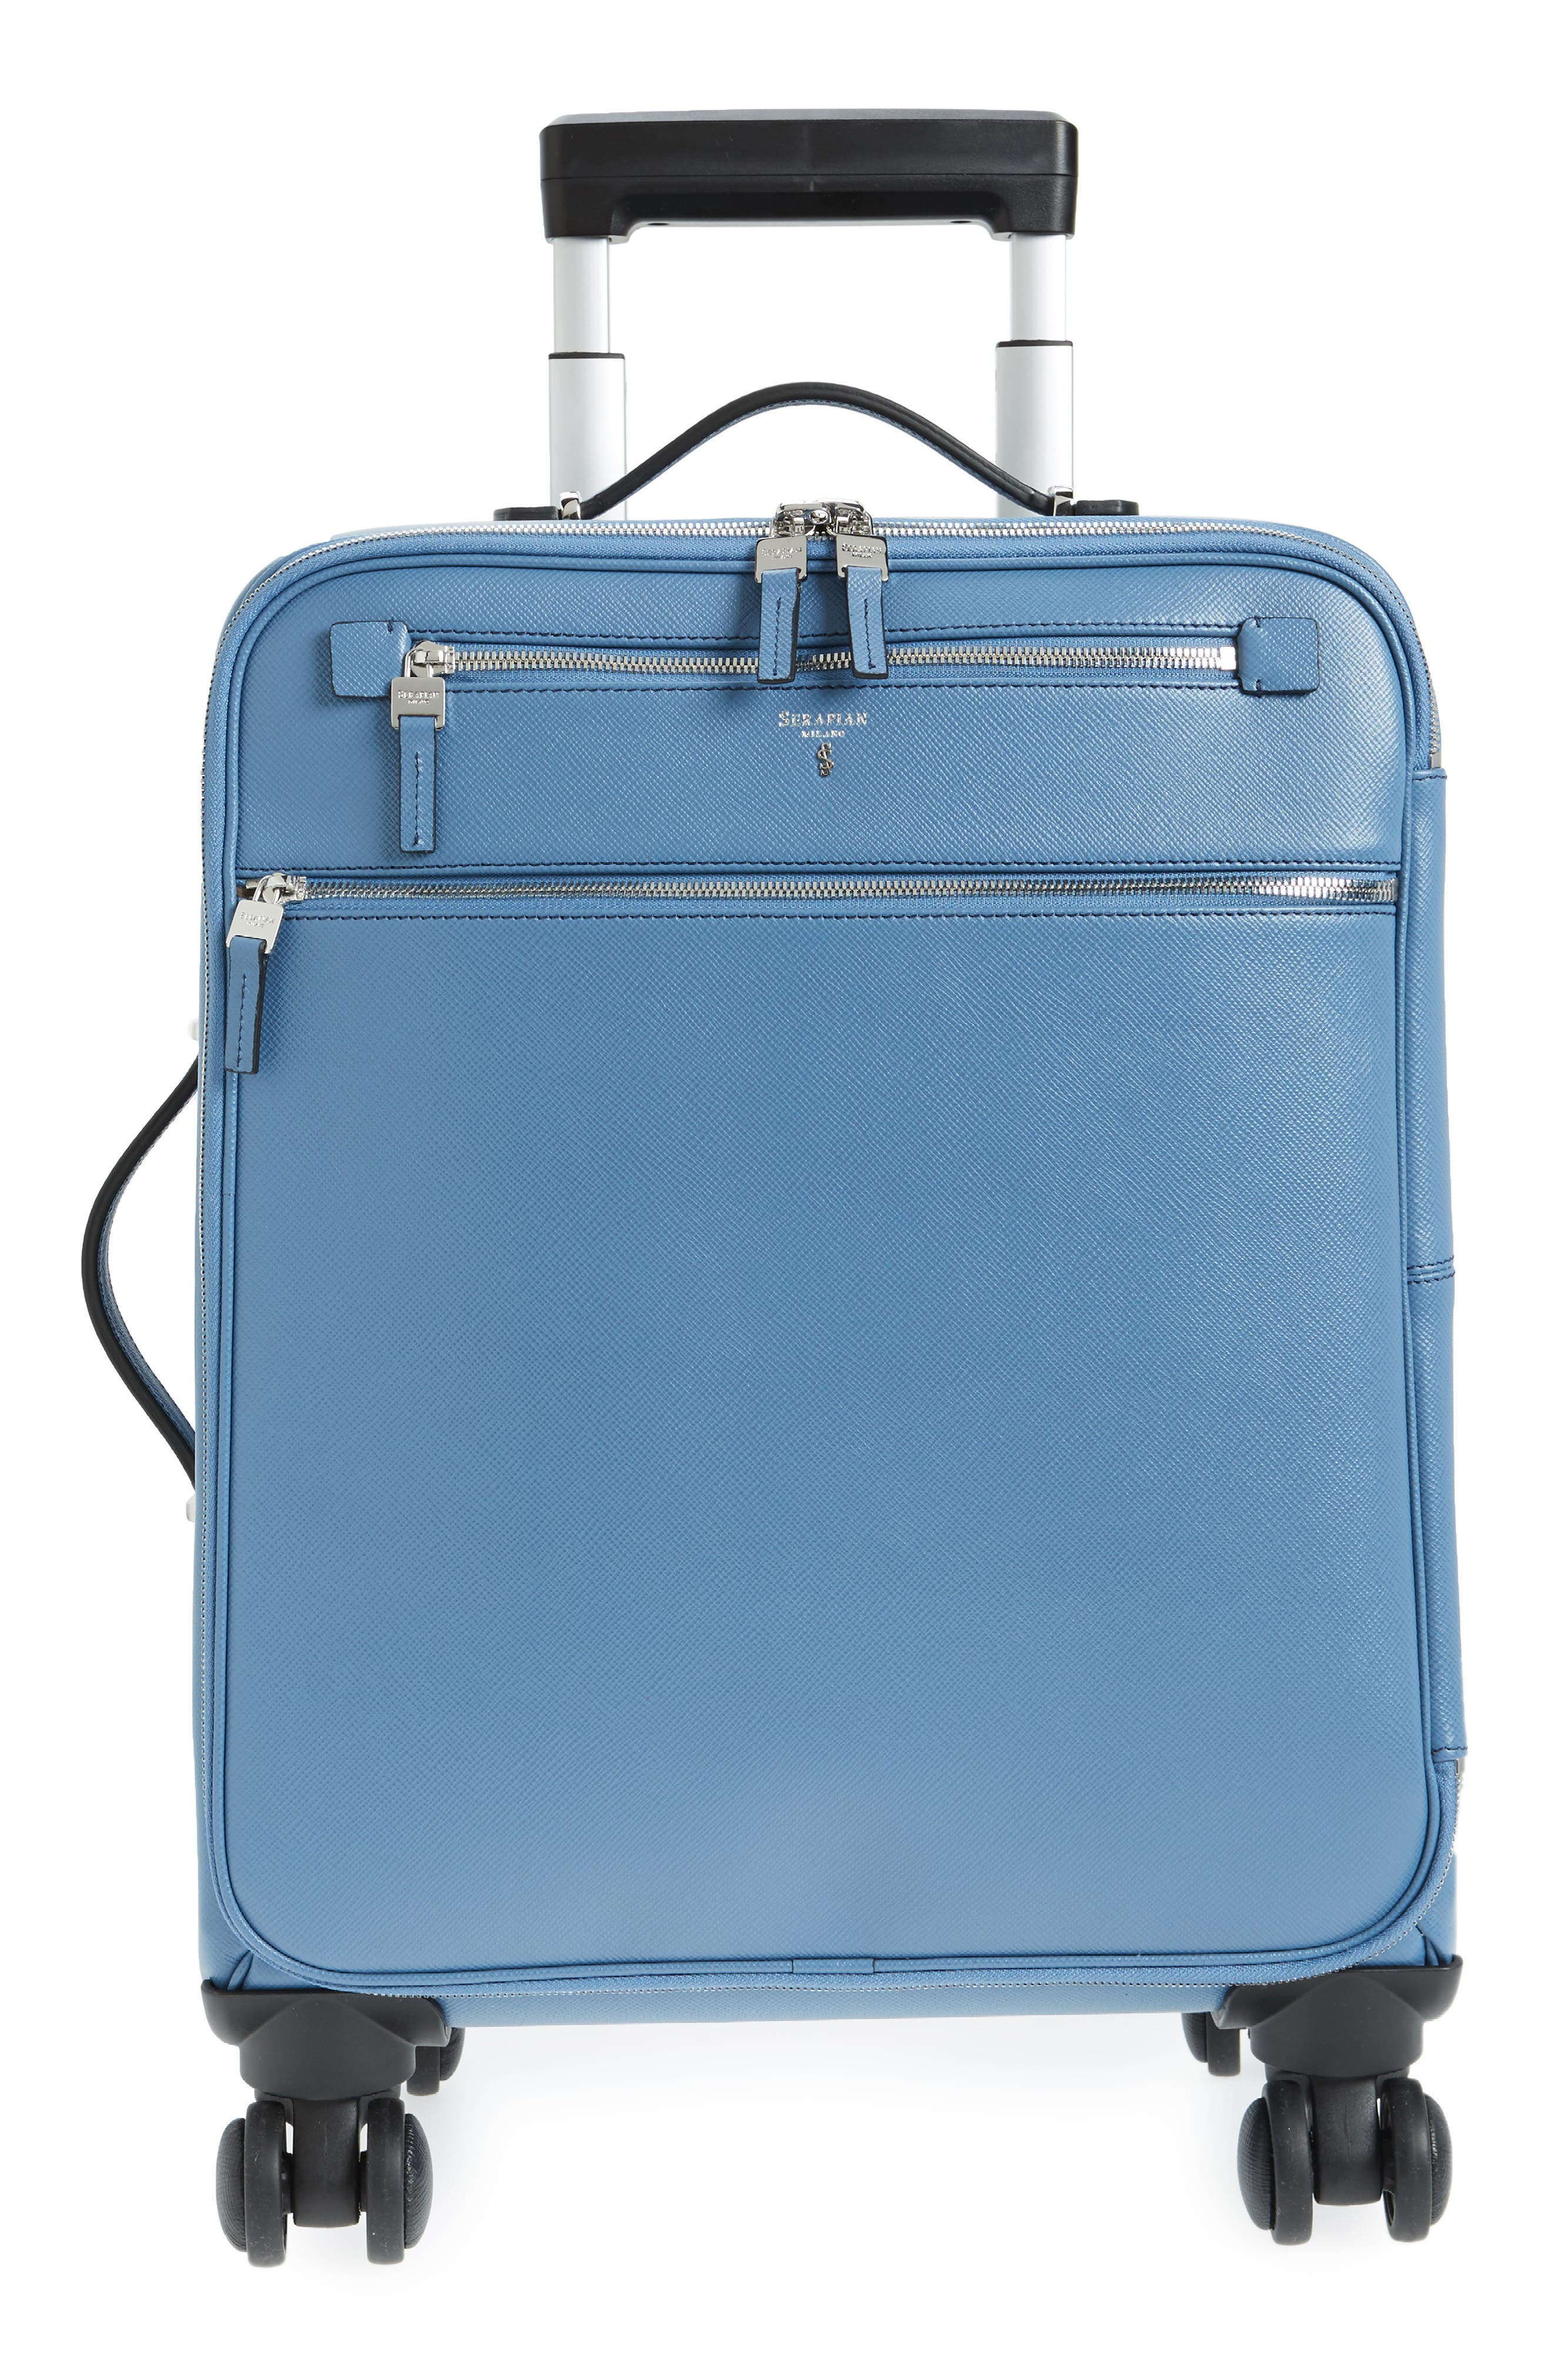 Trolley Spinner Wheeled Carry-On Suitcase,                             Main thumbnail 1, color,                             Blue Jeans